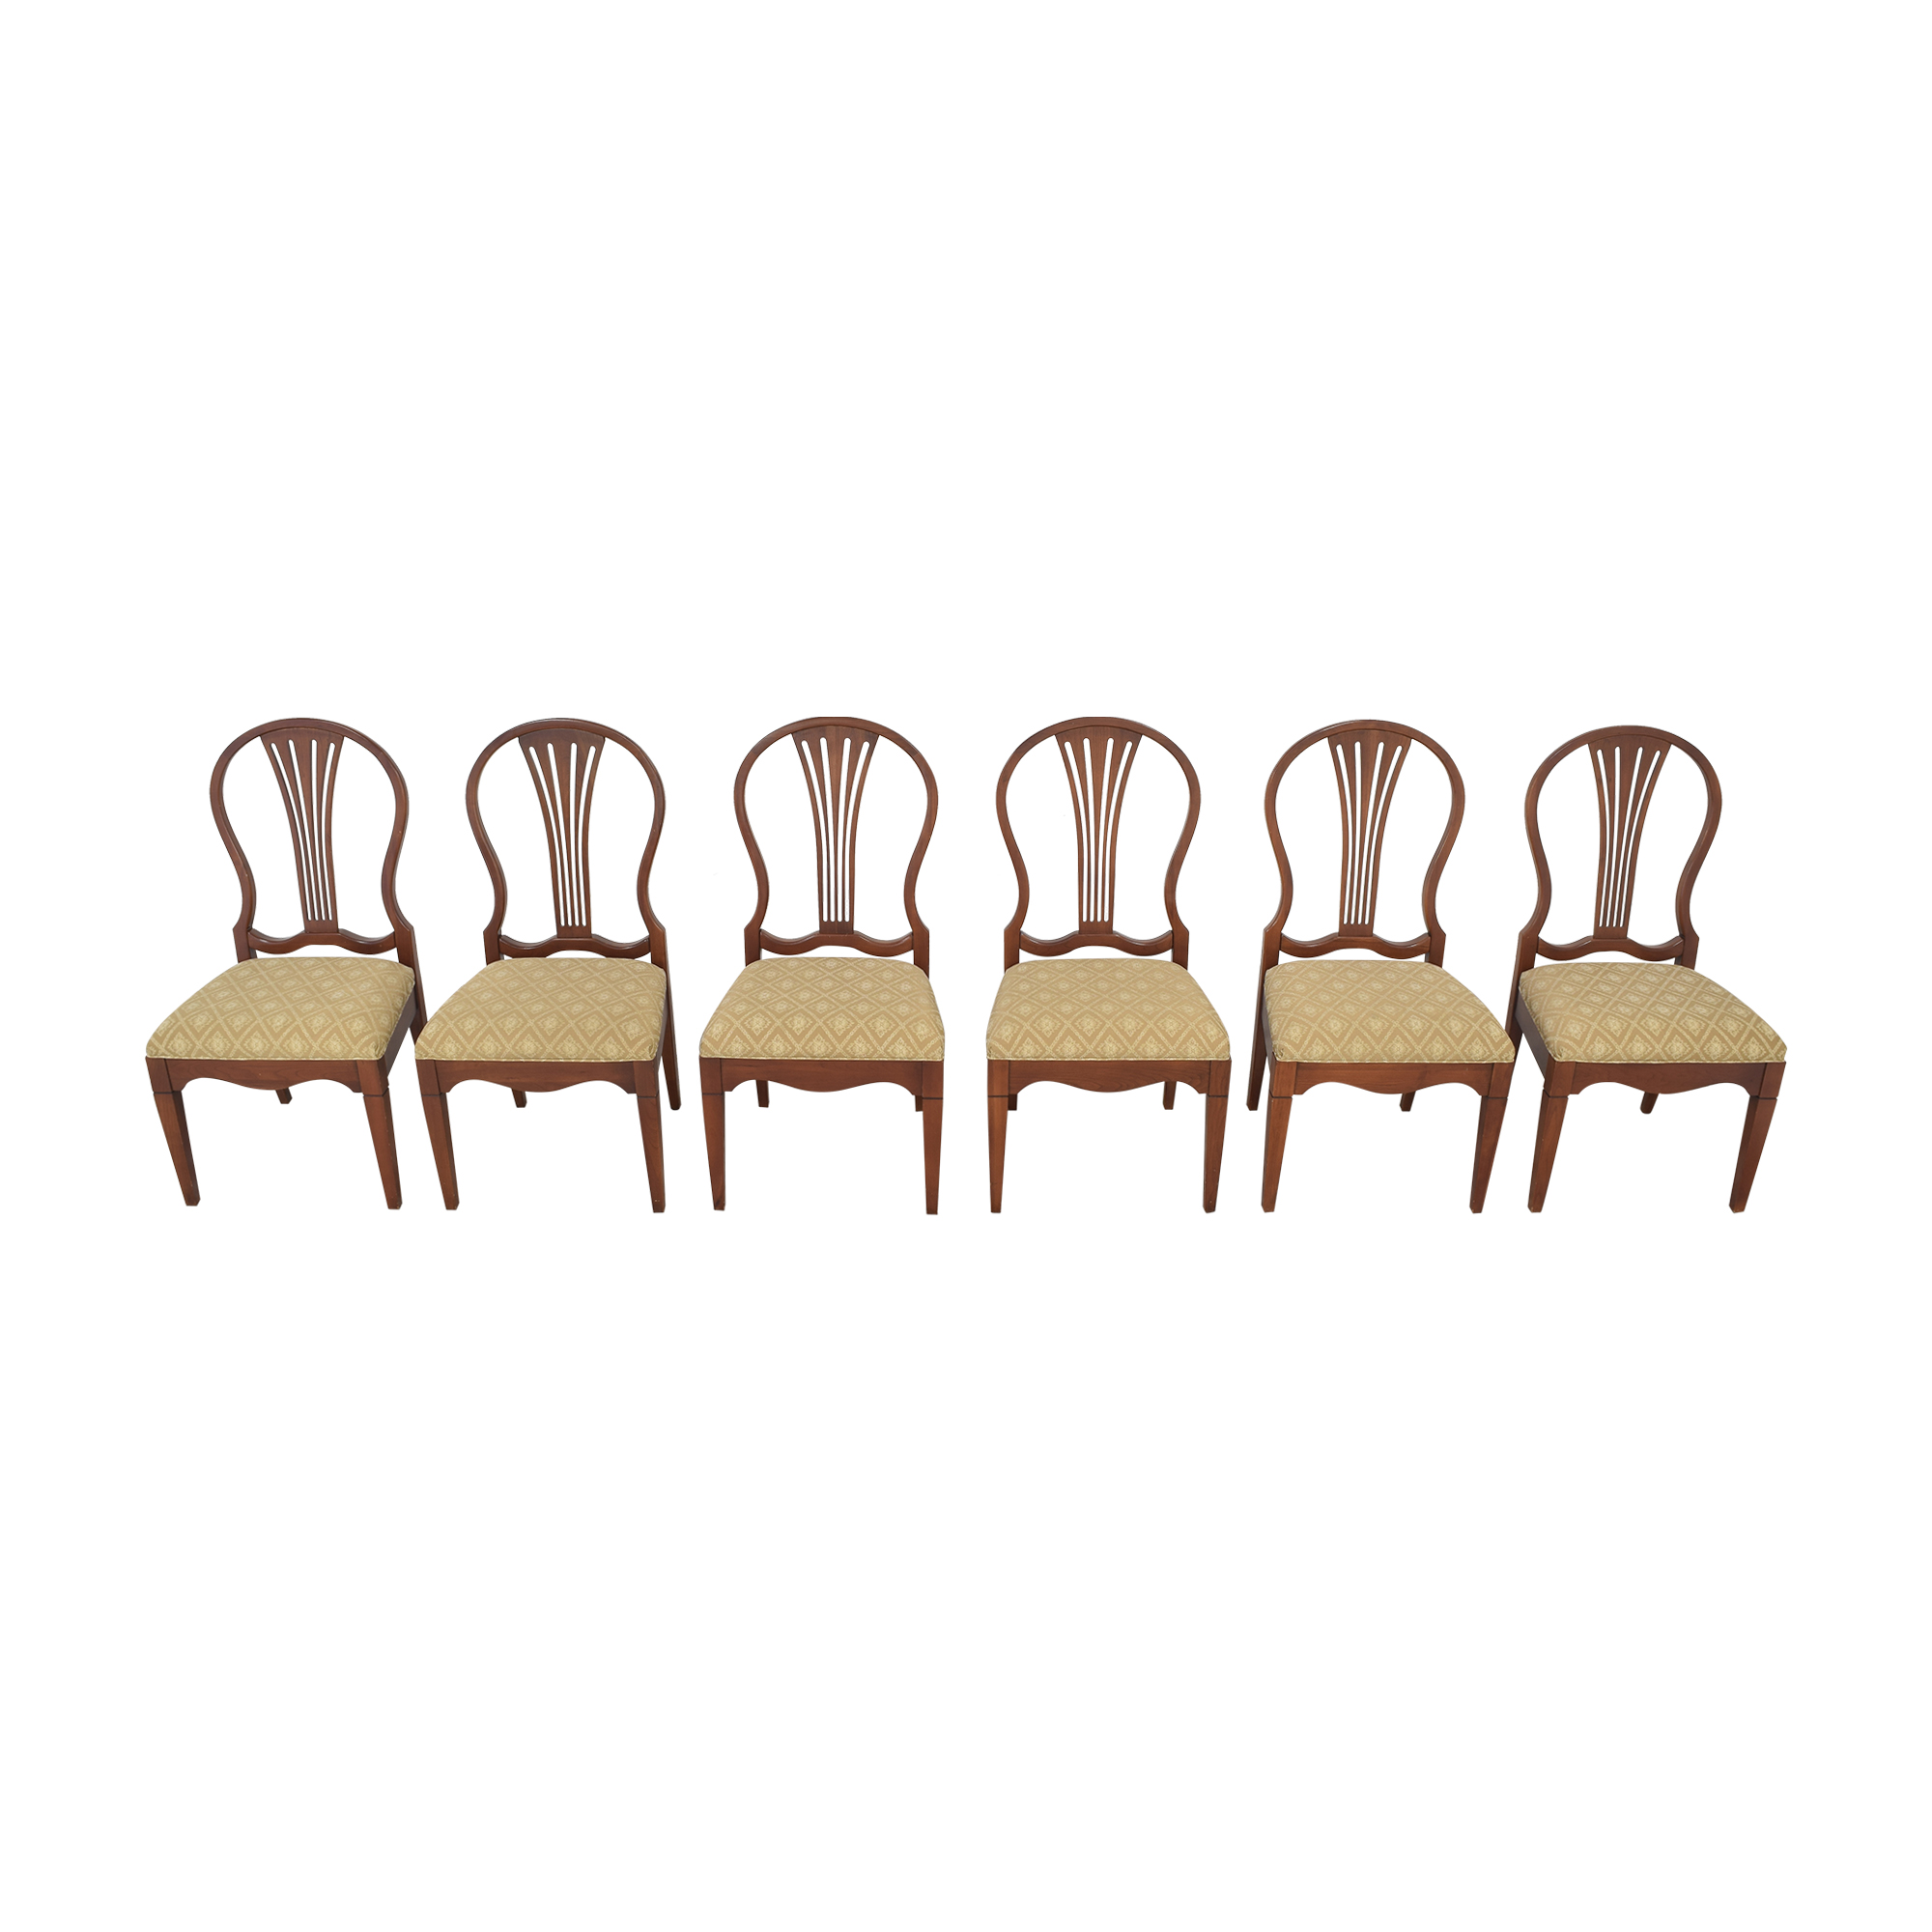 Harden Harden Upholstered Dining Chairs Dining Chairs